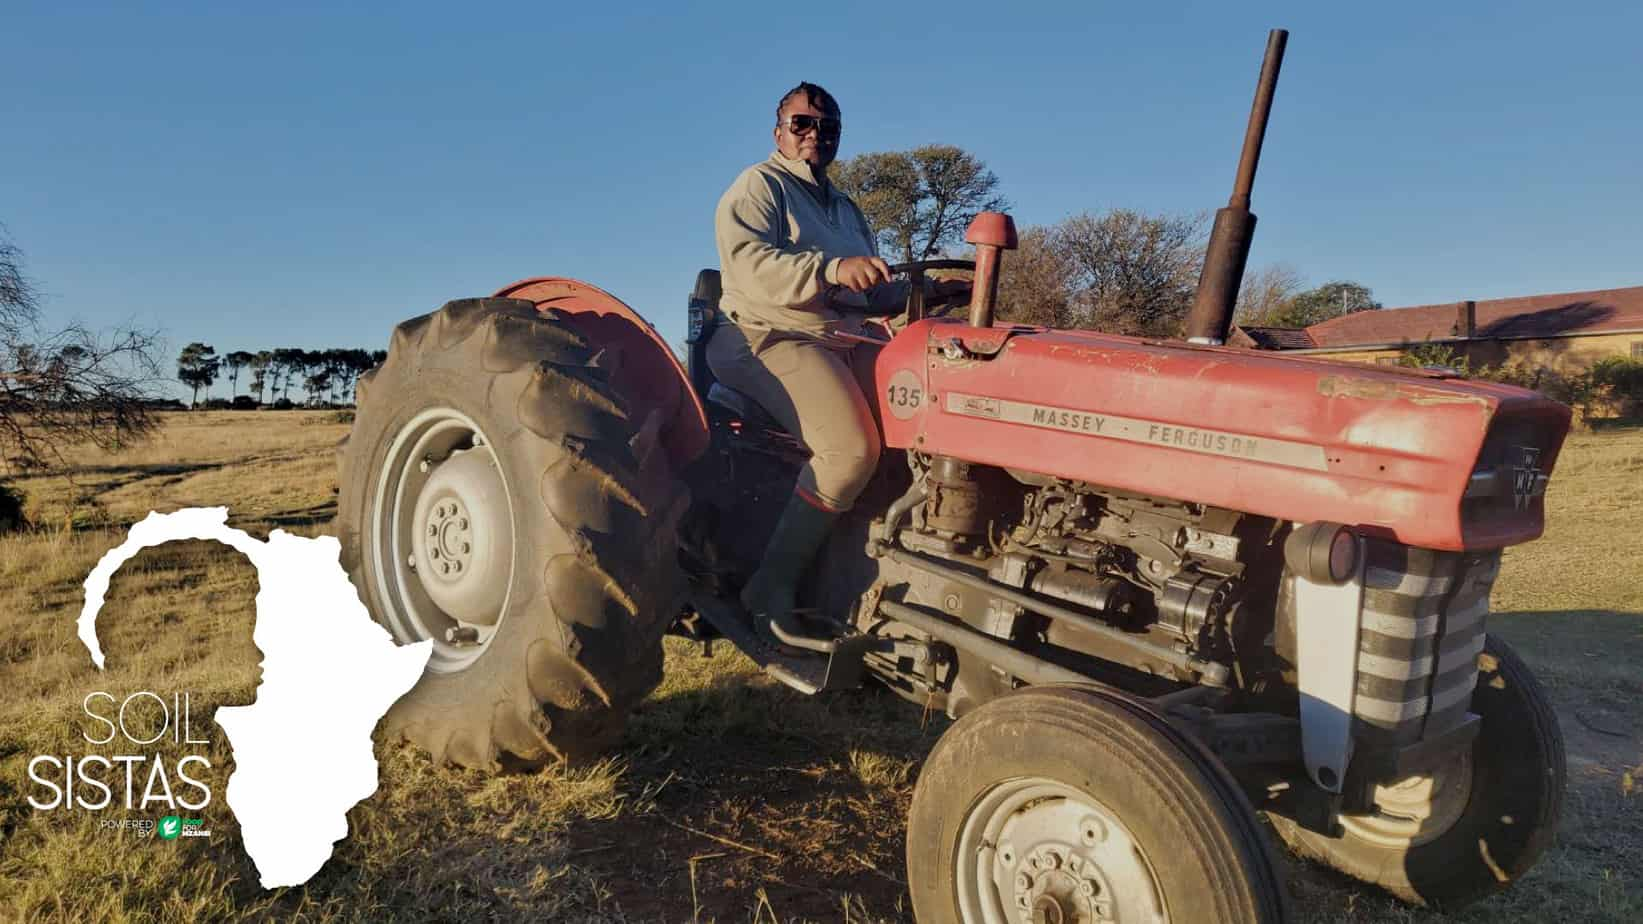 Nobuntu Makhoa, this week's Corteva Agriscience SoilSista, started her farming education when her father turned her childhood home into an informal dairy. Now she continues his legacy. Photo: Supplied